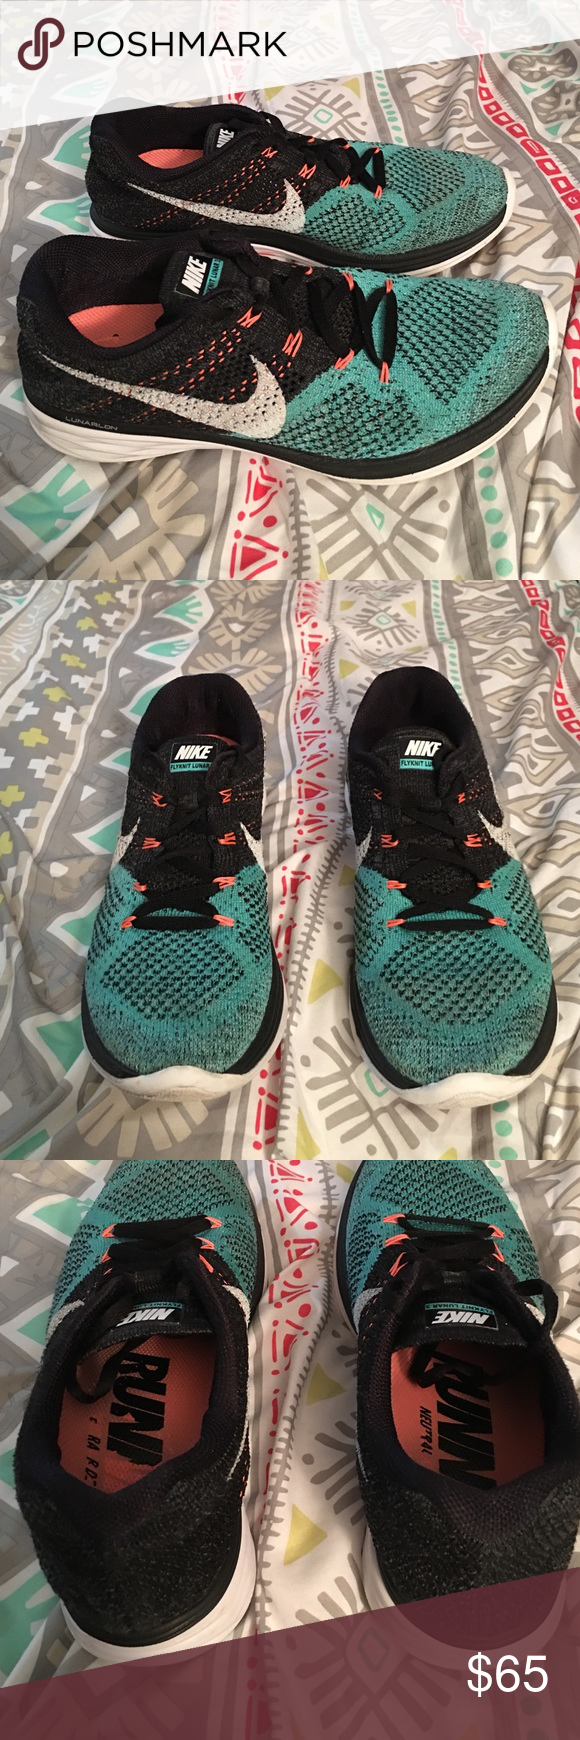 61f44519fd0 ... uk teal and black nike flyknit lunar 3 womens 9 good condition but has  been worn